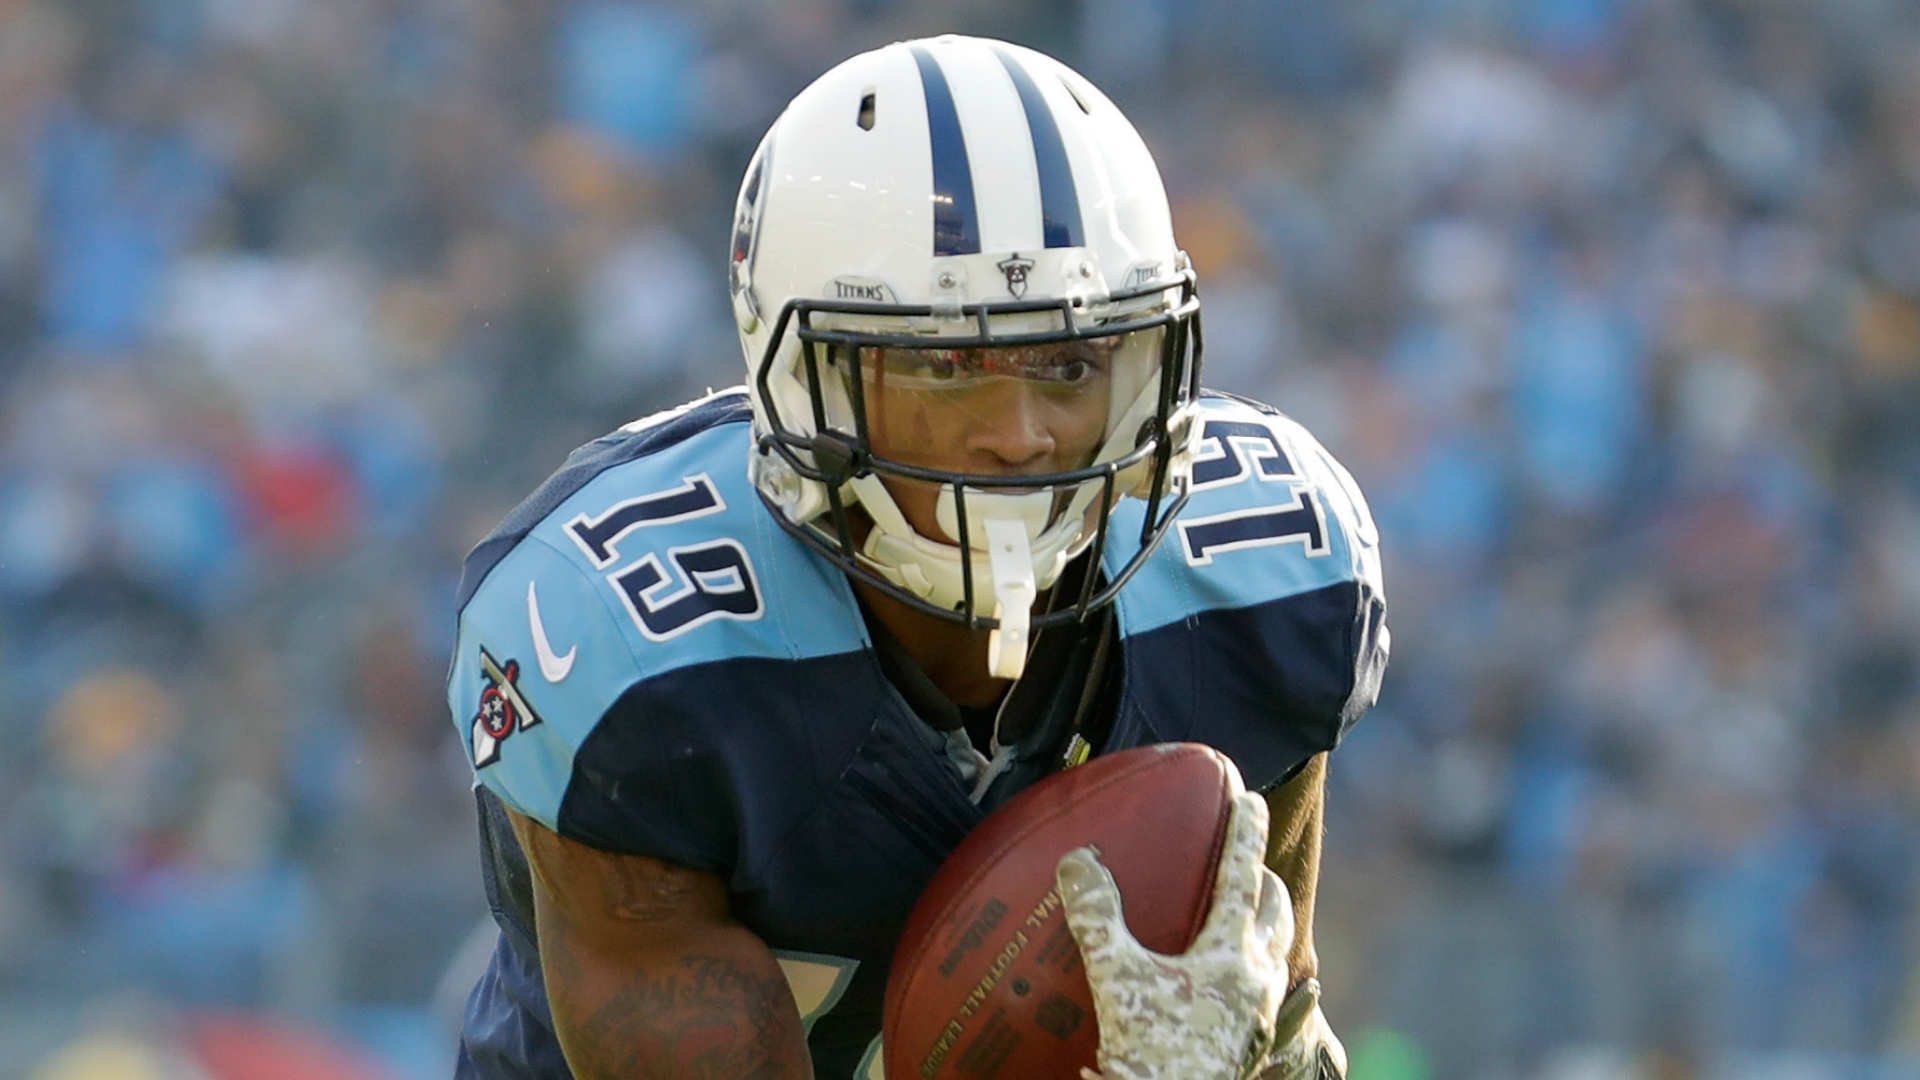 Tajae Sharpe, Titans WR, accused of assaulting man at Tenn. bar